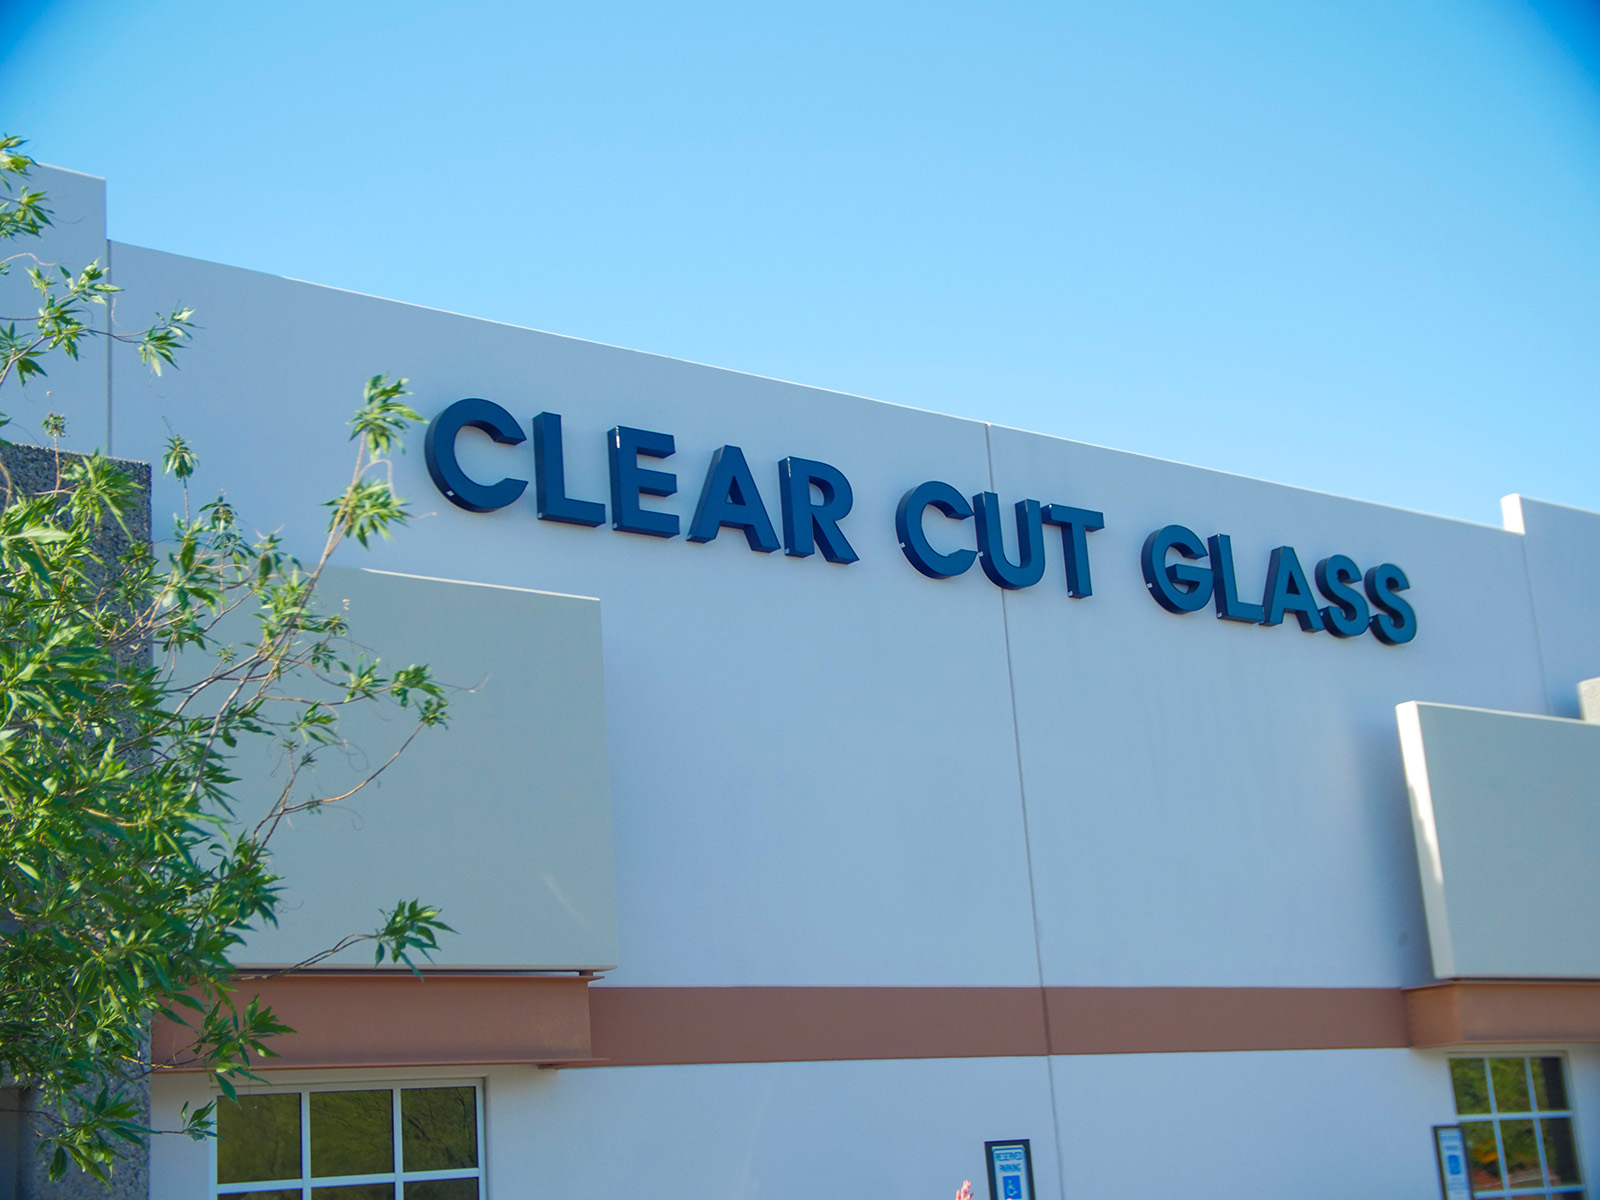 Clear Cut Glass Storefront